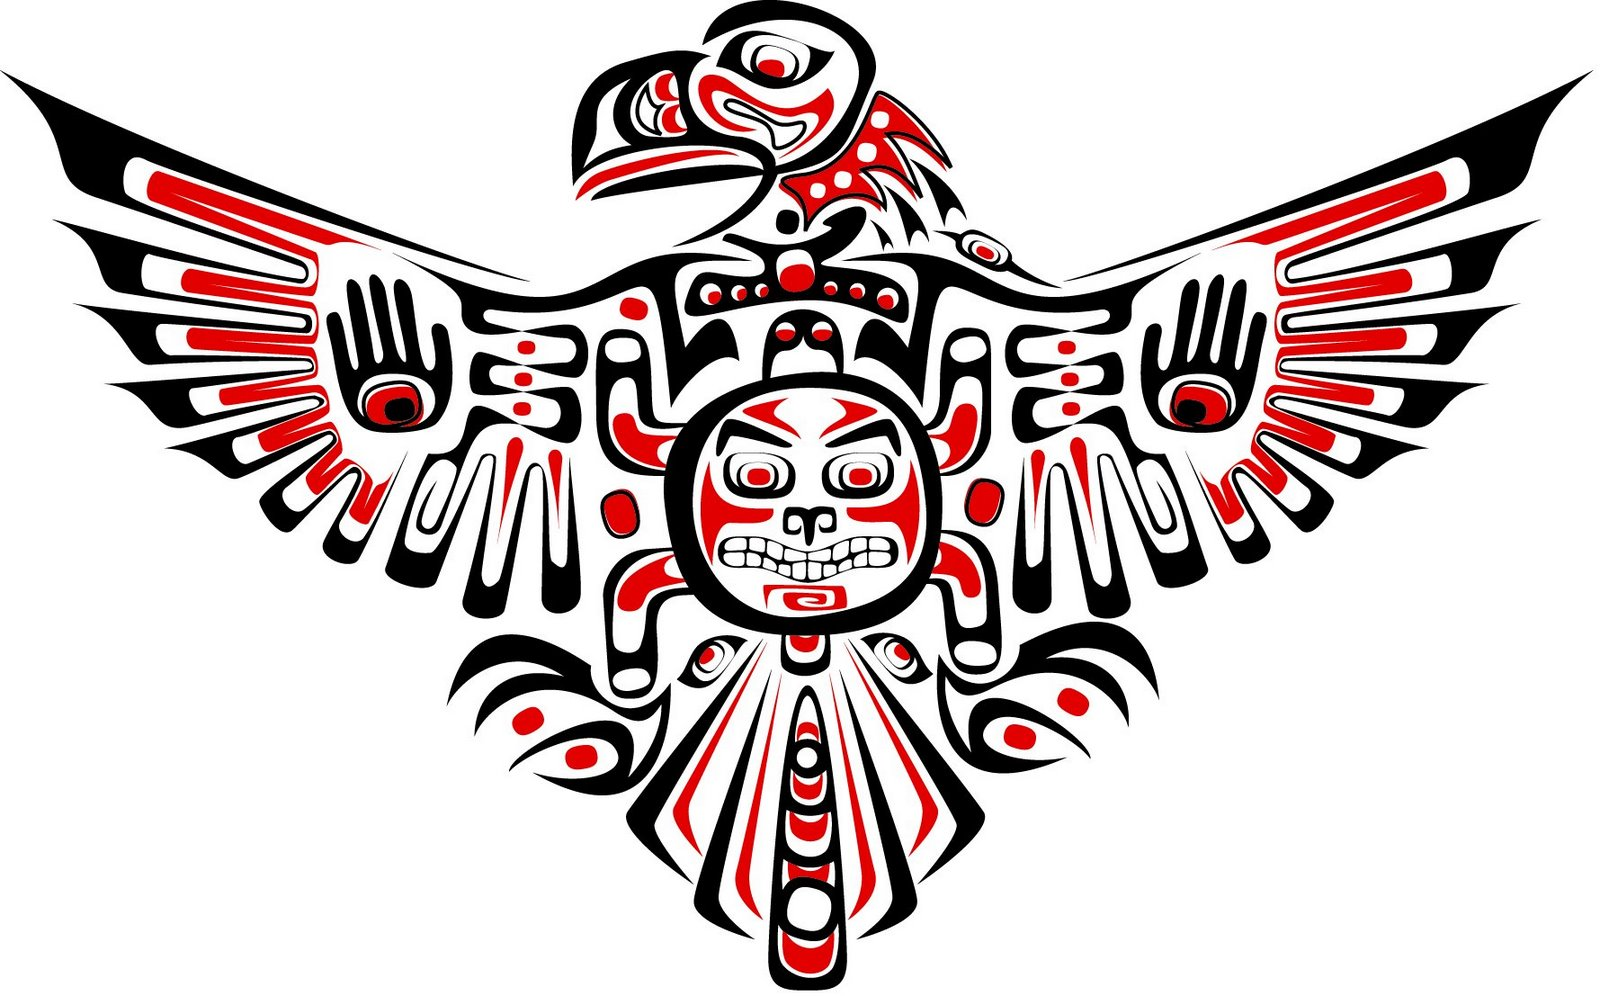 The Ongoing Land Disputes Of The Tsimshian People May